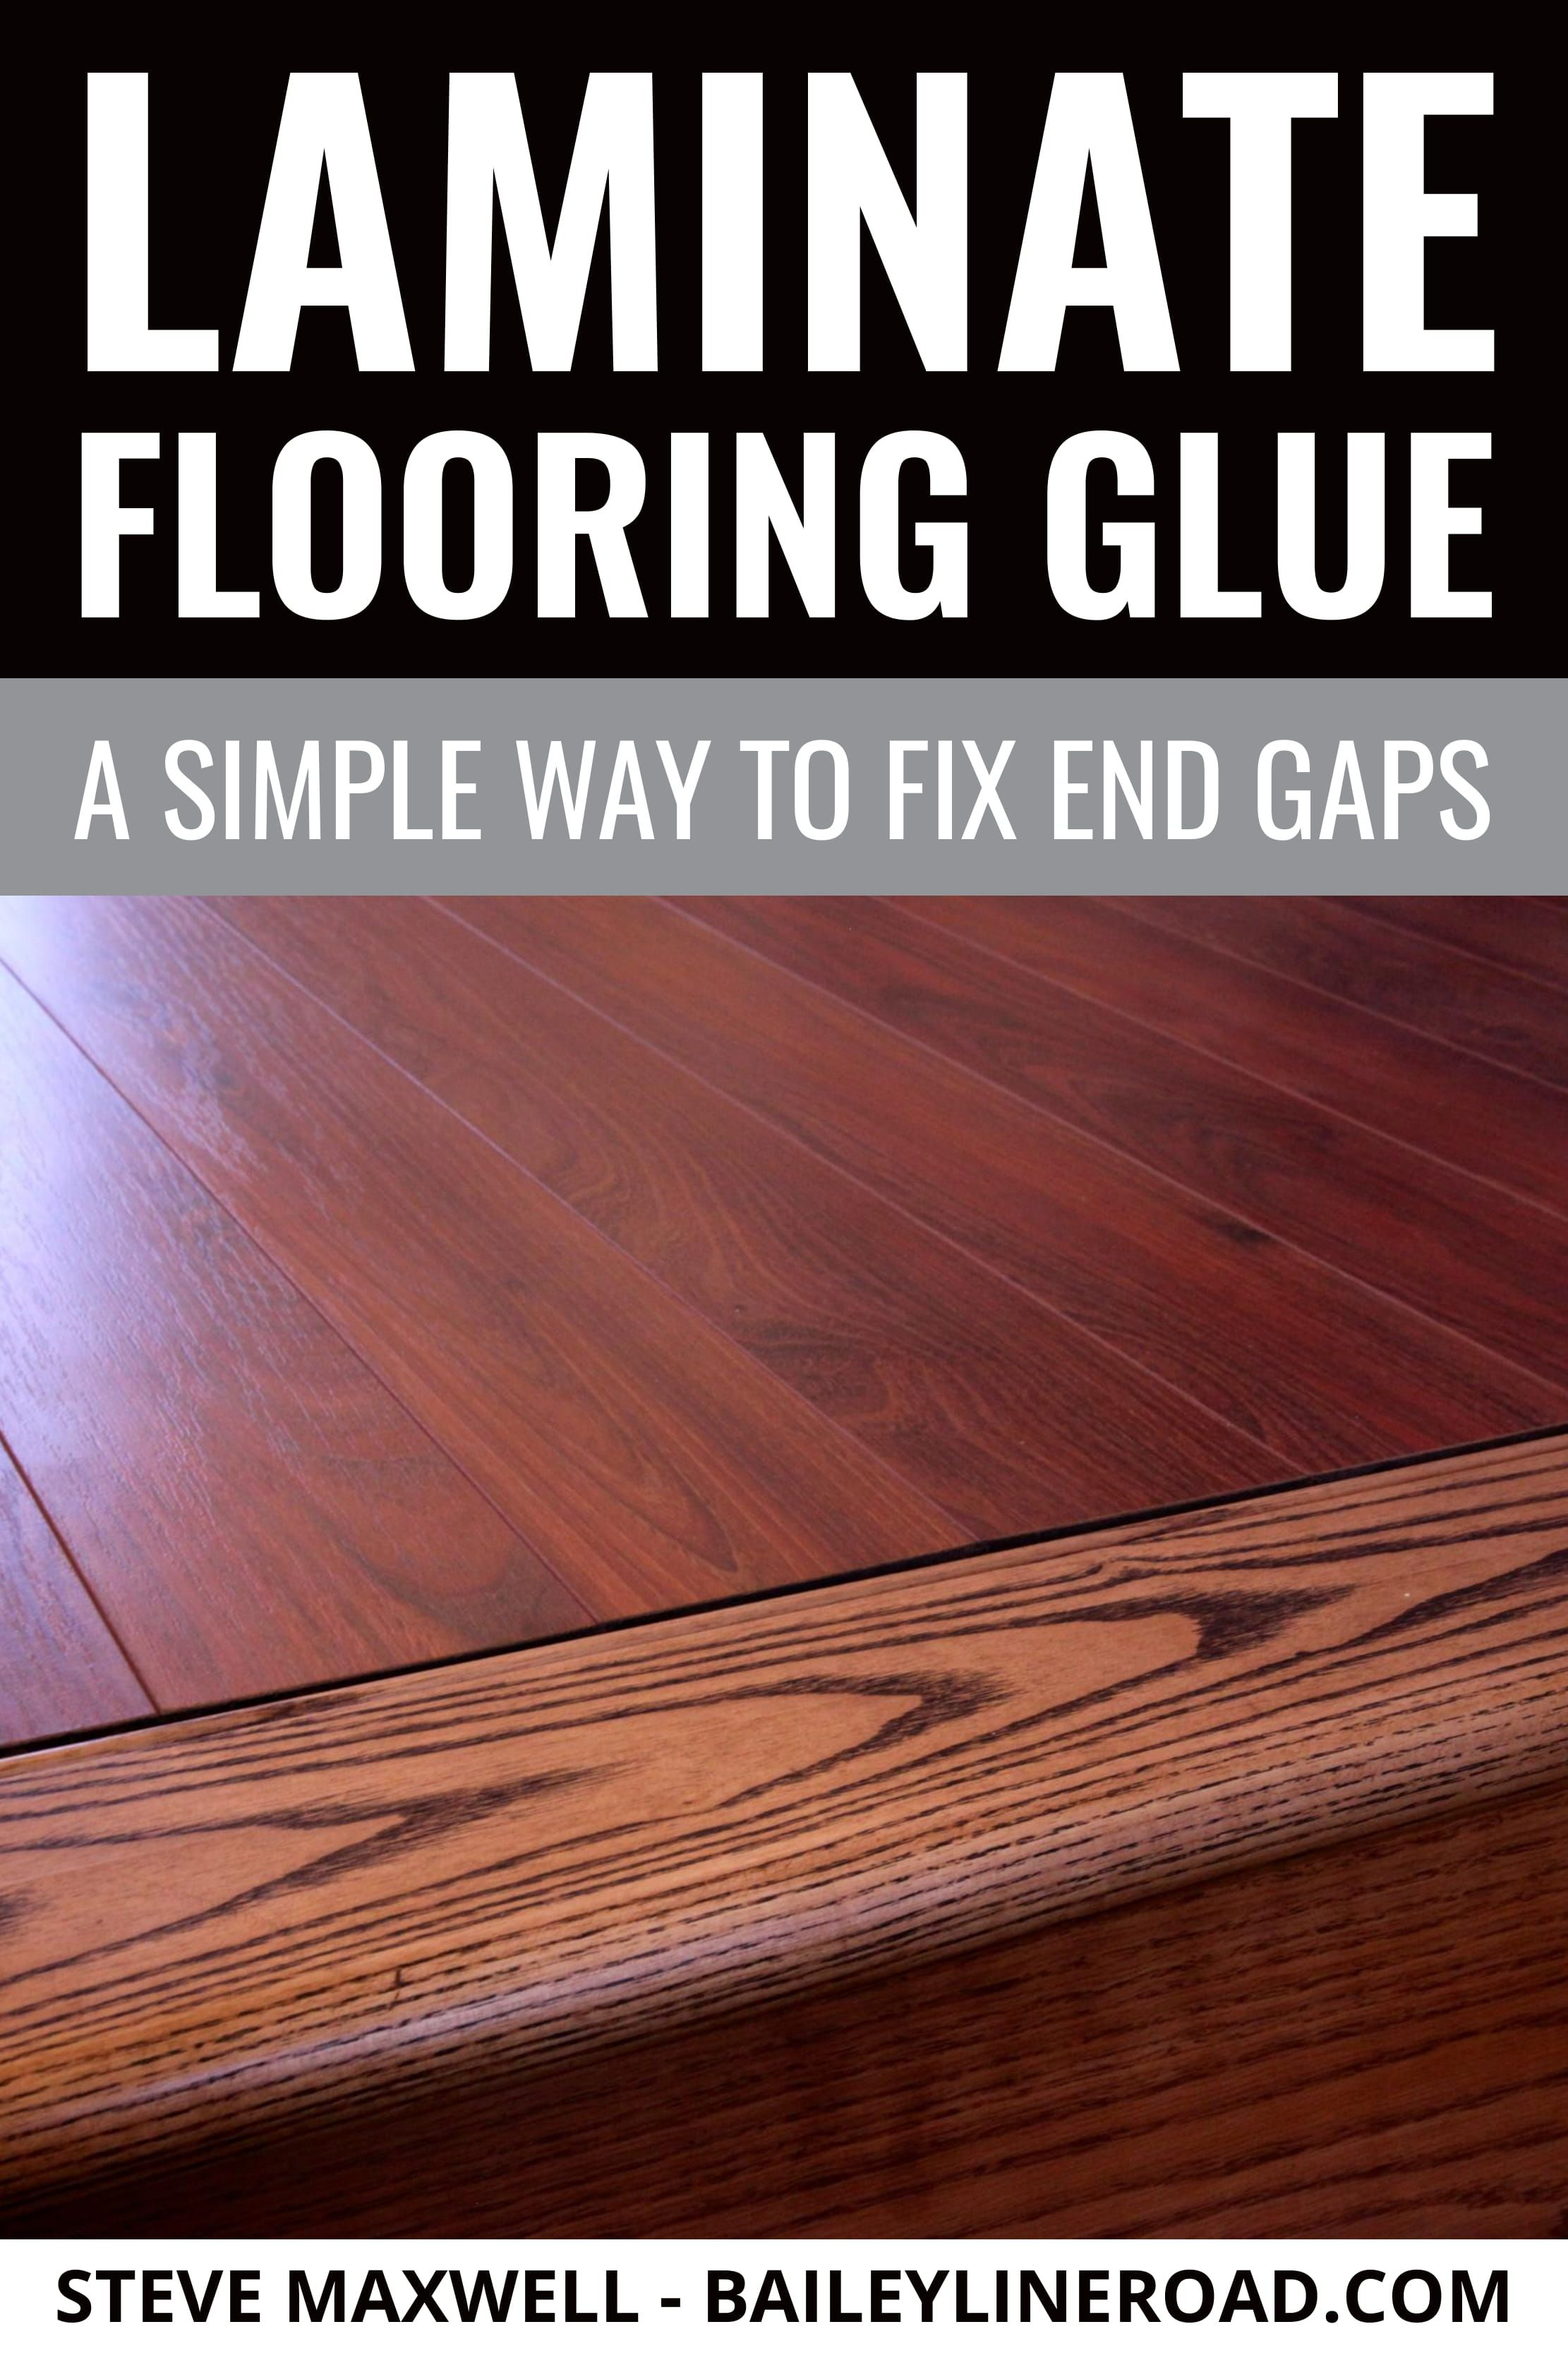 Glue For Laminate Flooring A Simple Way To Fix End Gaps Baileylineroad Laminate Laminate Flooring Flooring